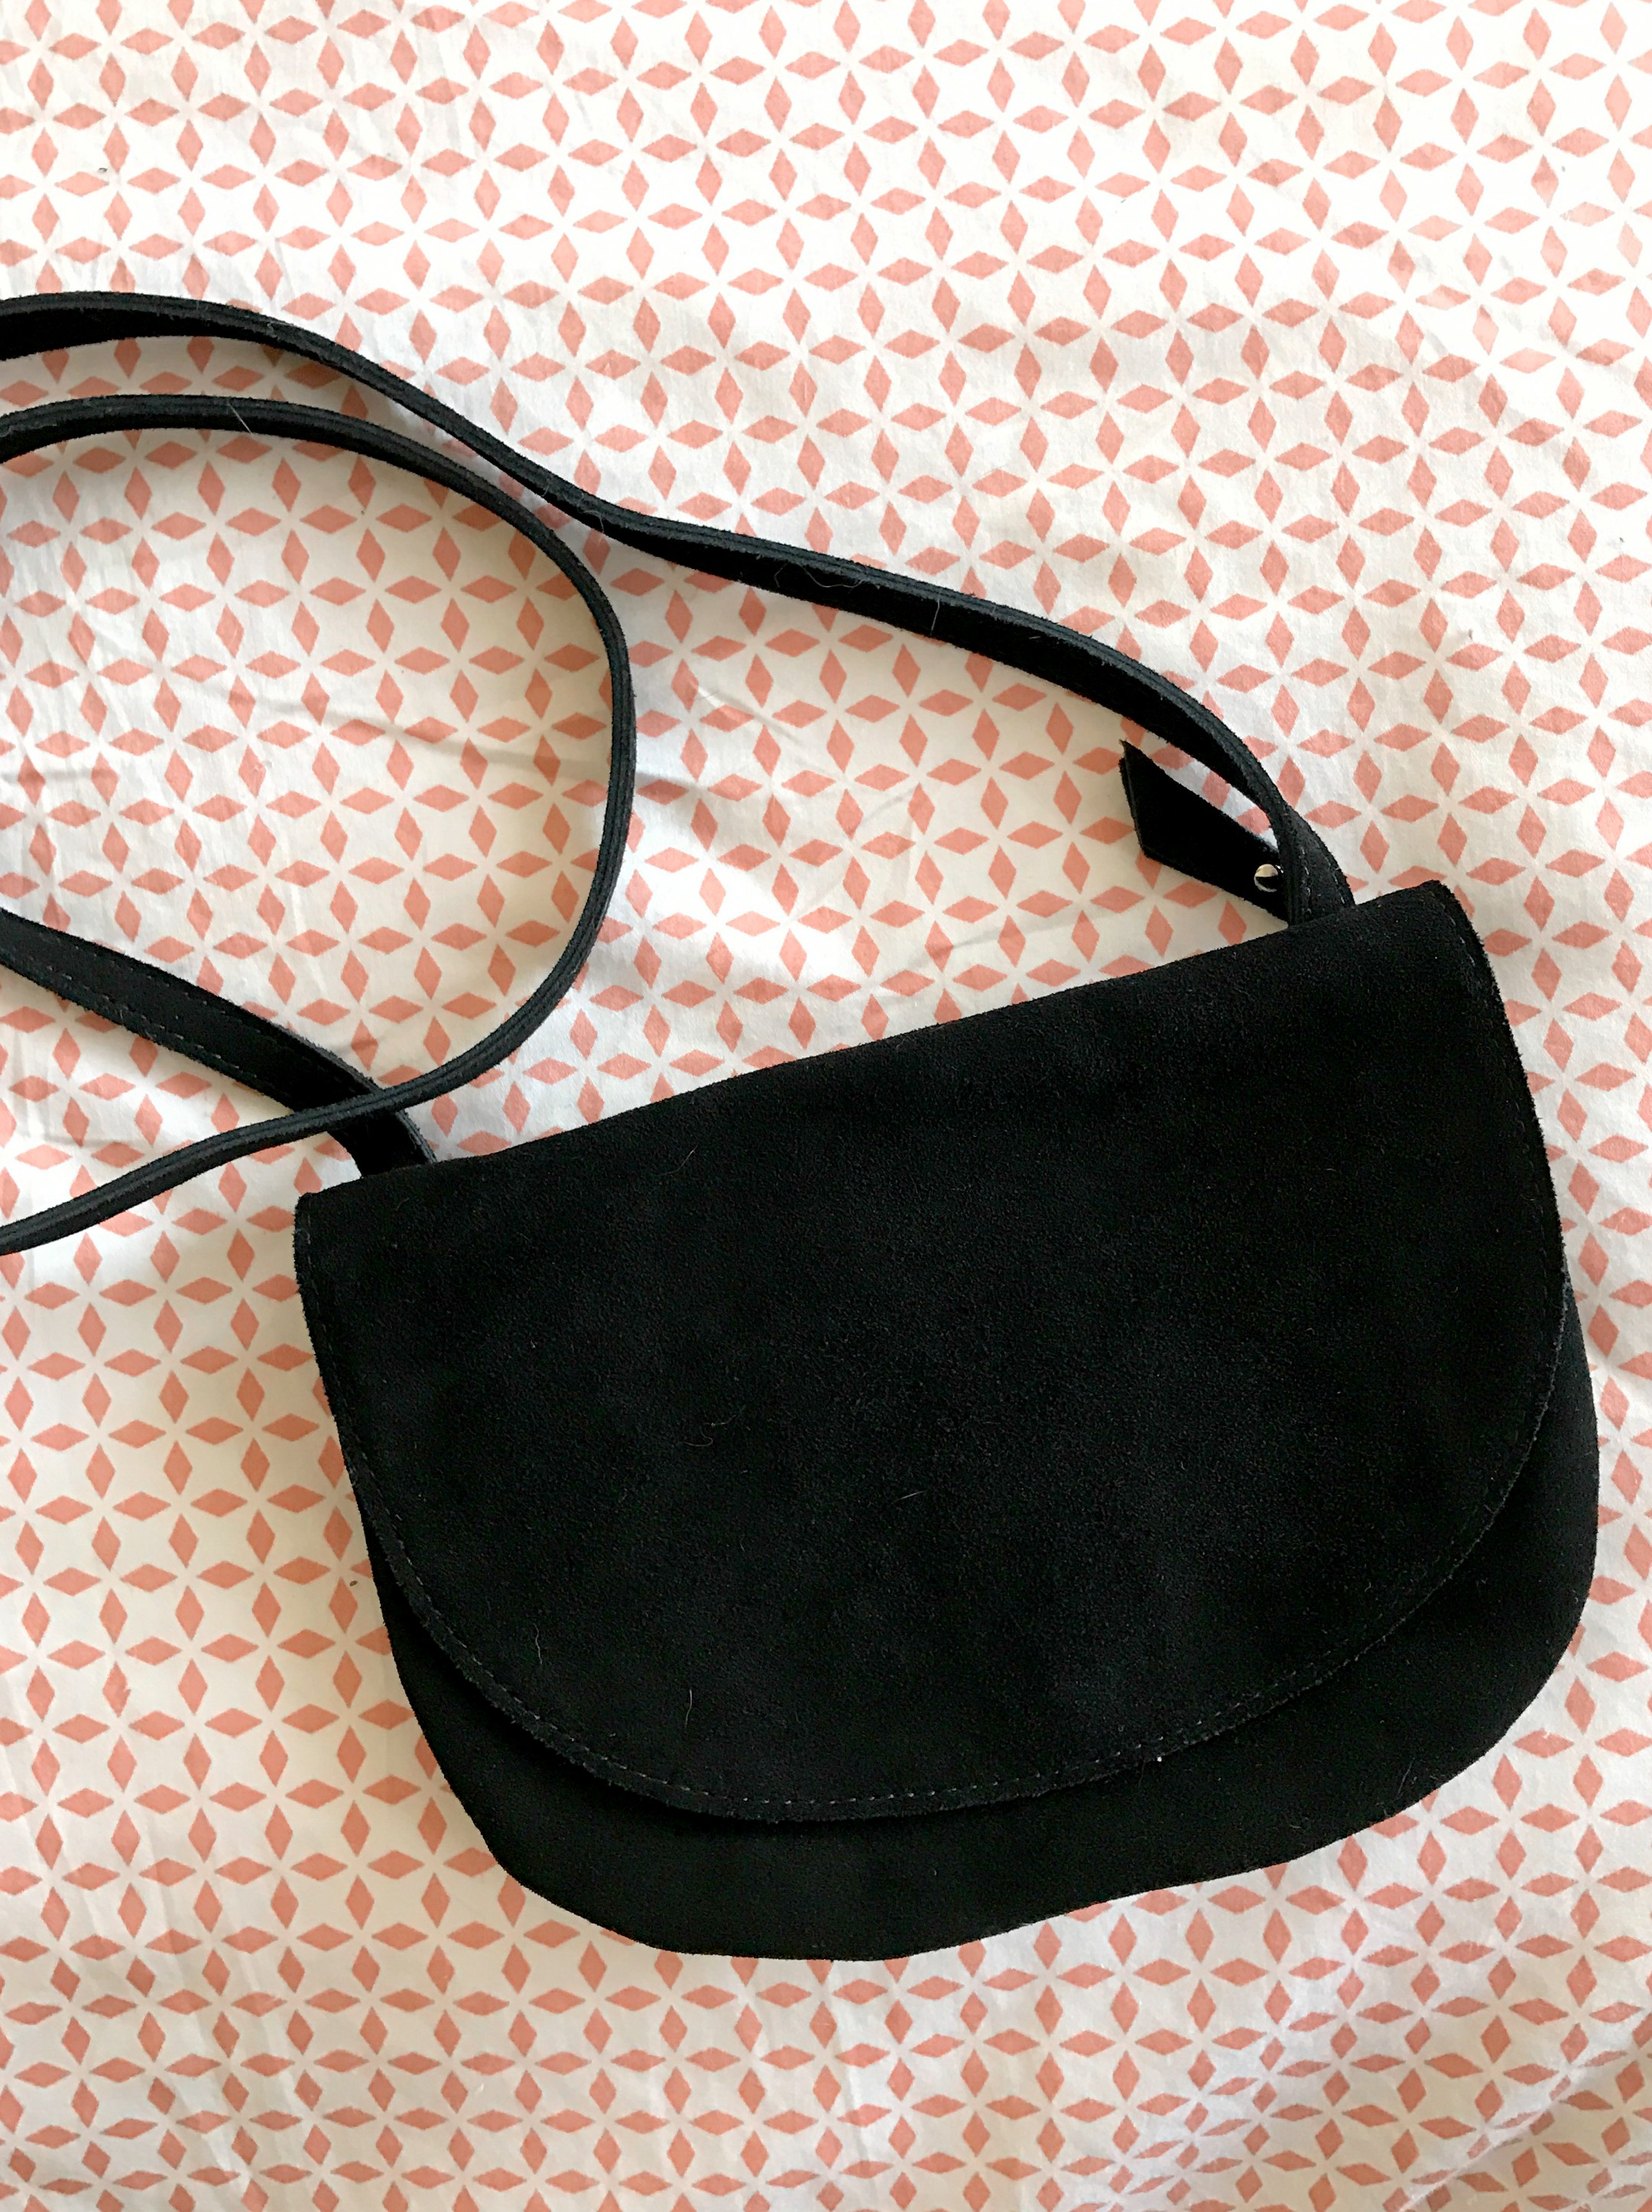 urban-outfitters-black-crossbody-bag